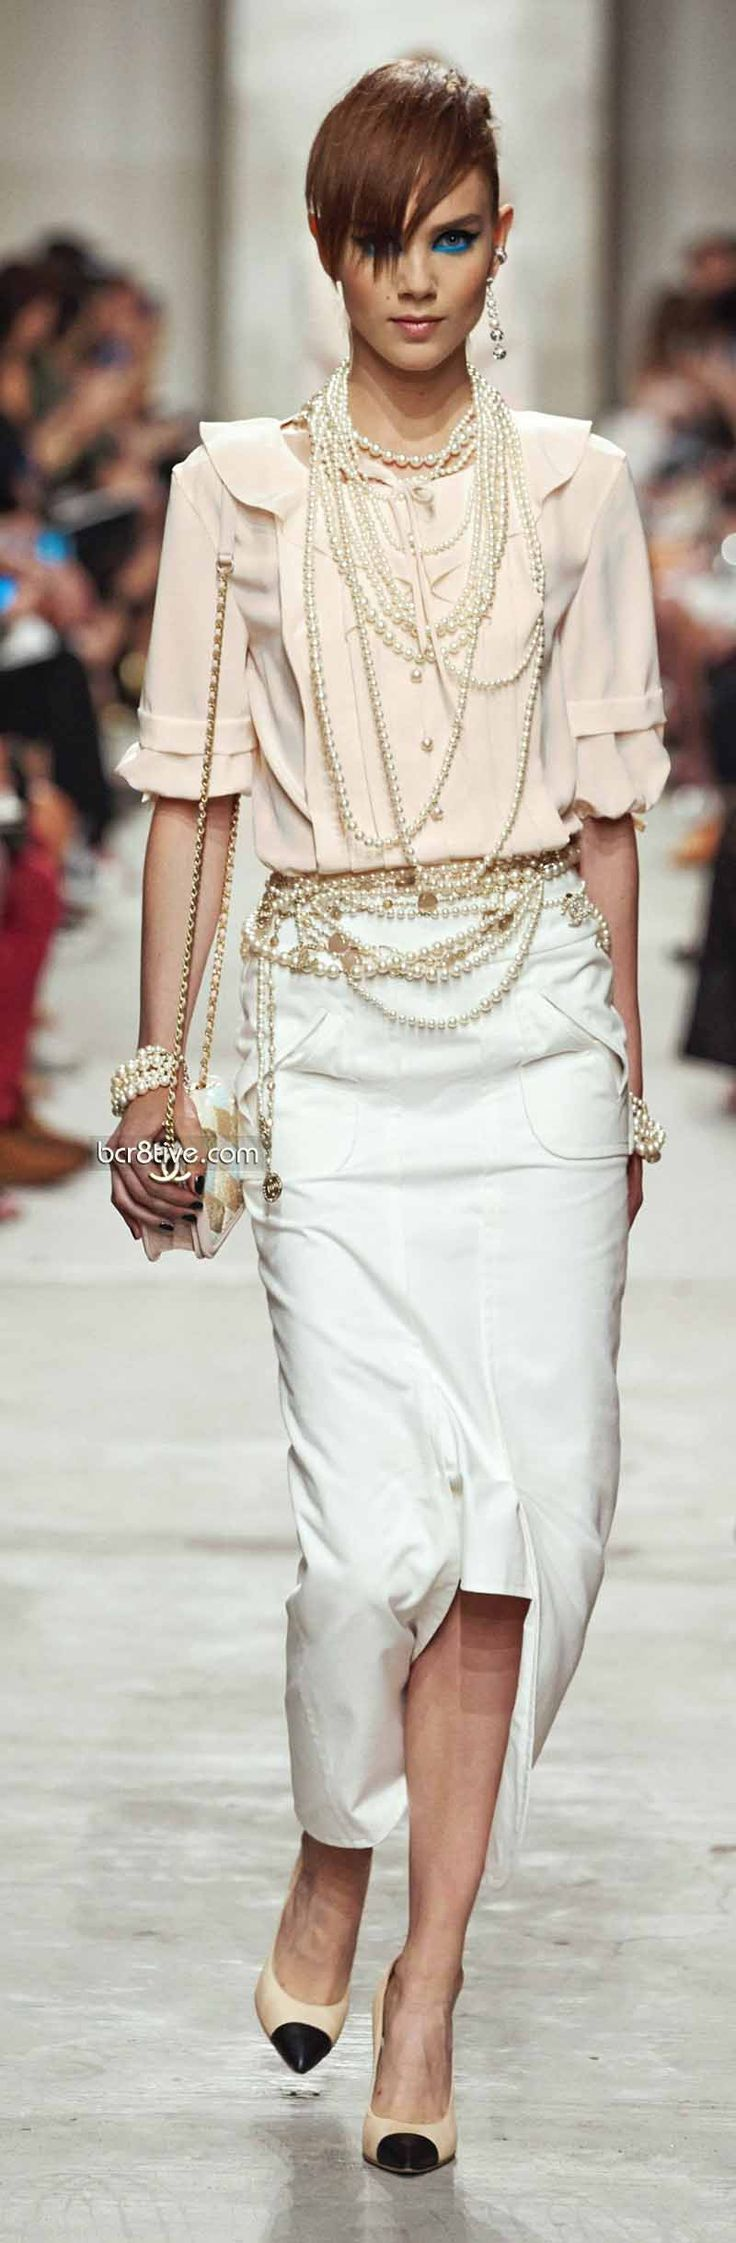 Pearl Princess! Chanel Resort 2013-14 Designer Fashion Trends Runway Style